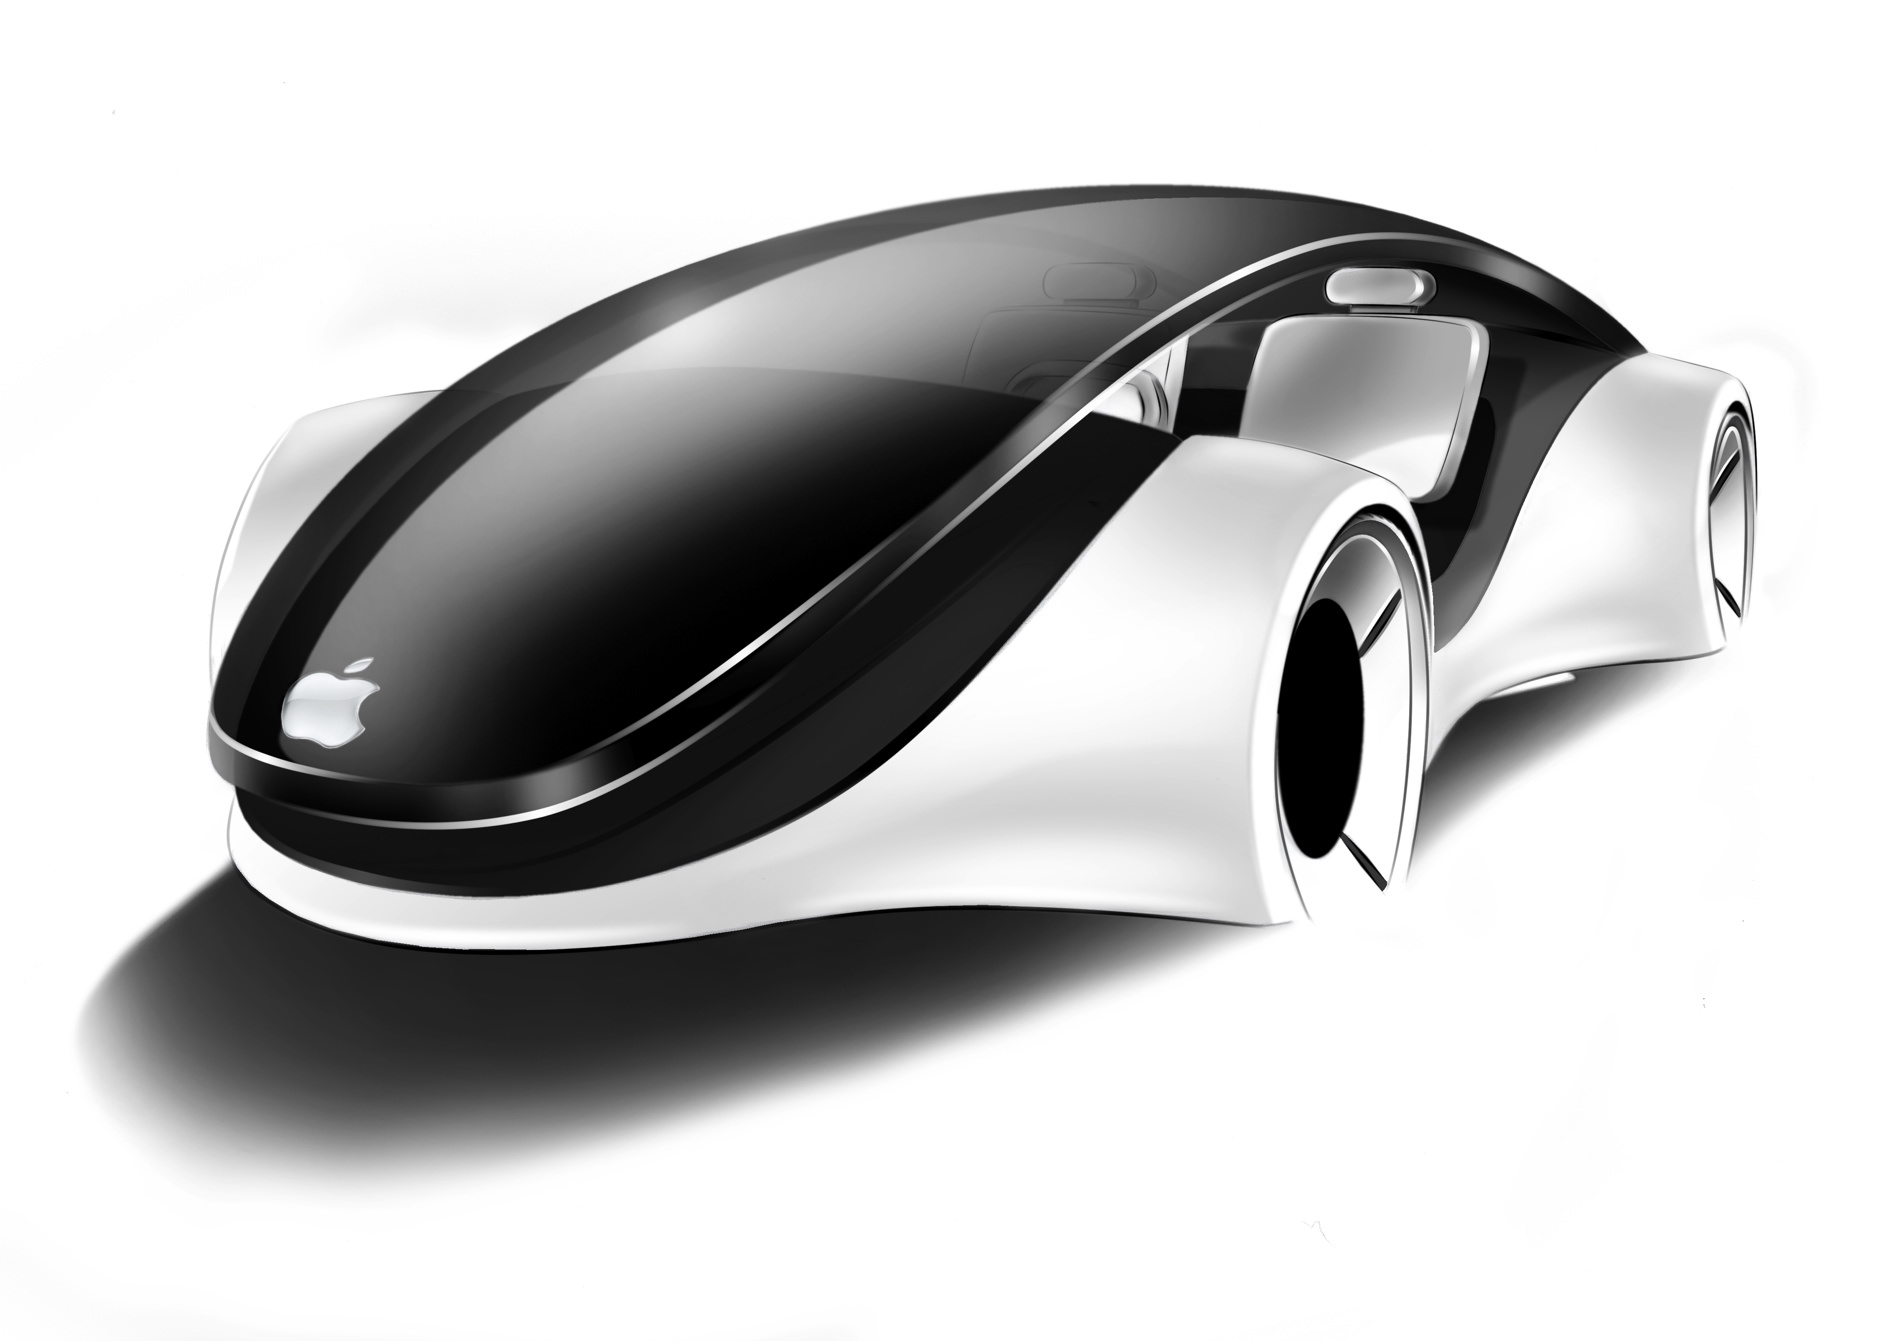 Il rendering di una possibile Apple Car